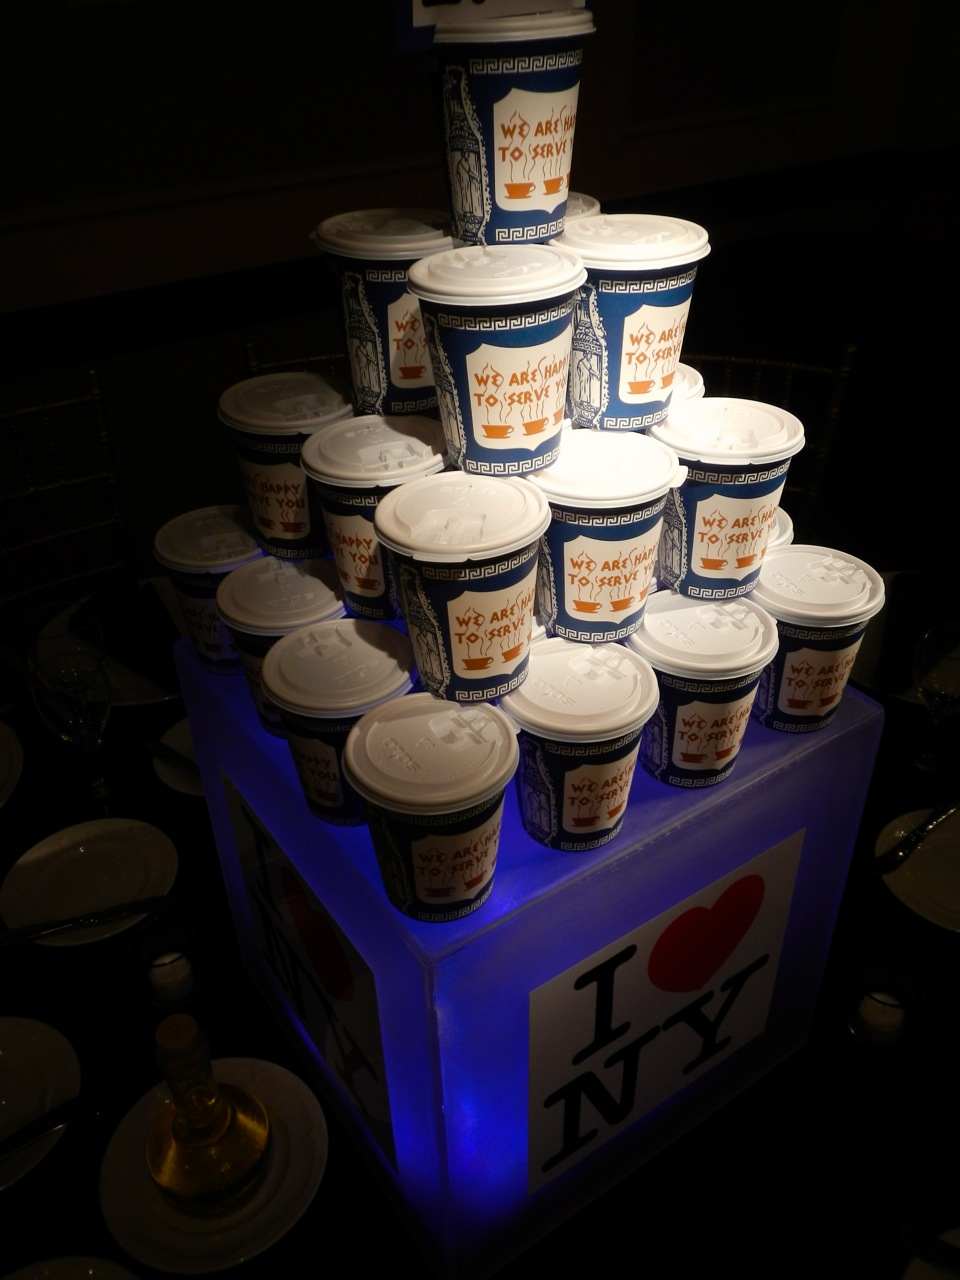 These famous coffee cups are all but extinct now in NYC, but we found them and built a tower of them. We also illuminated one of our cube foundations with blue LEDs and added images.